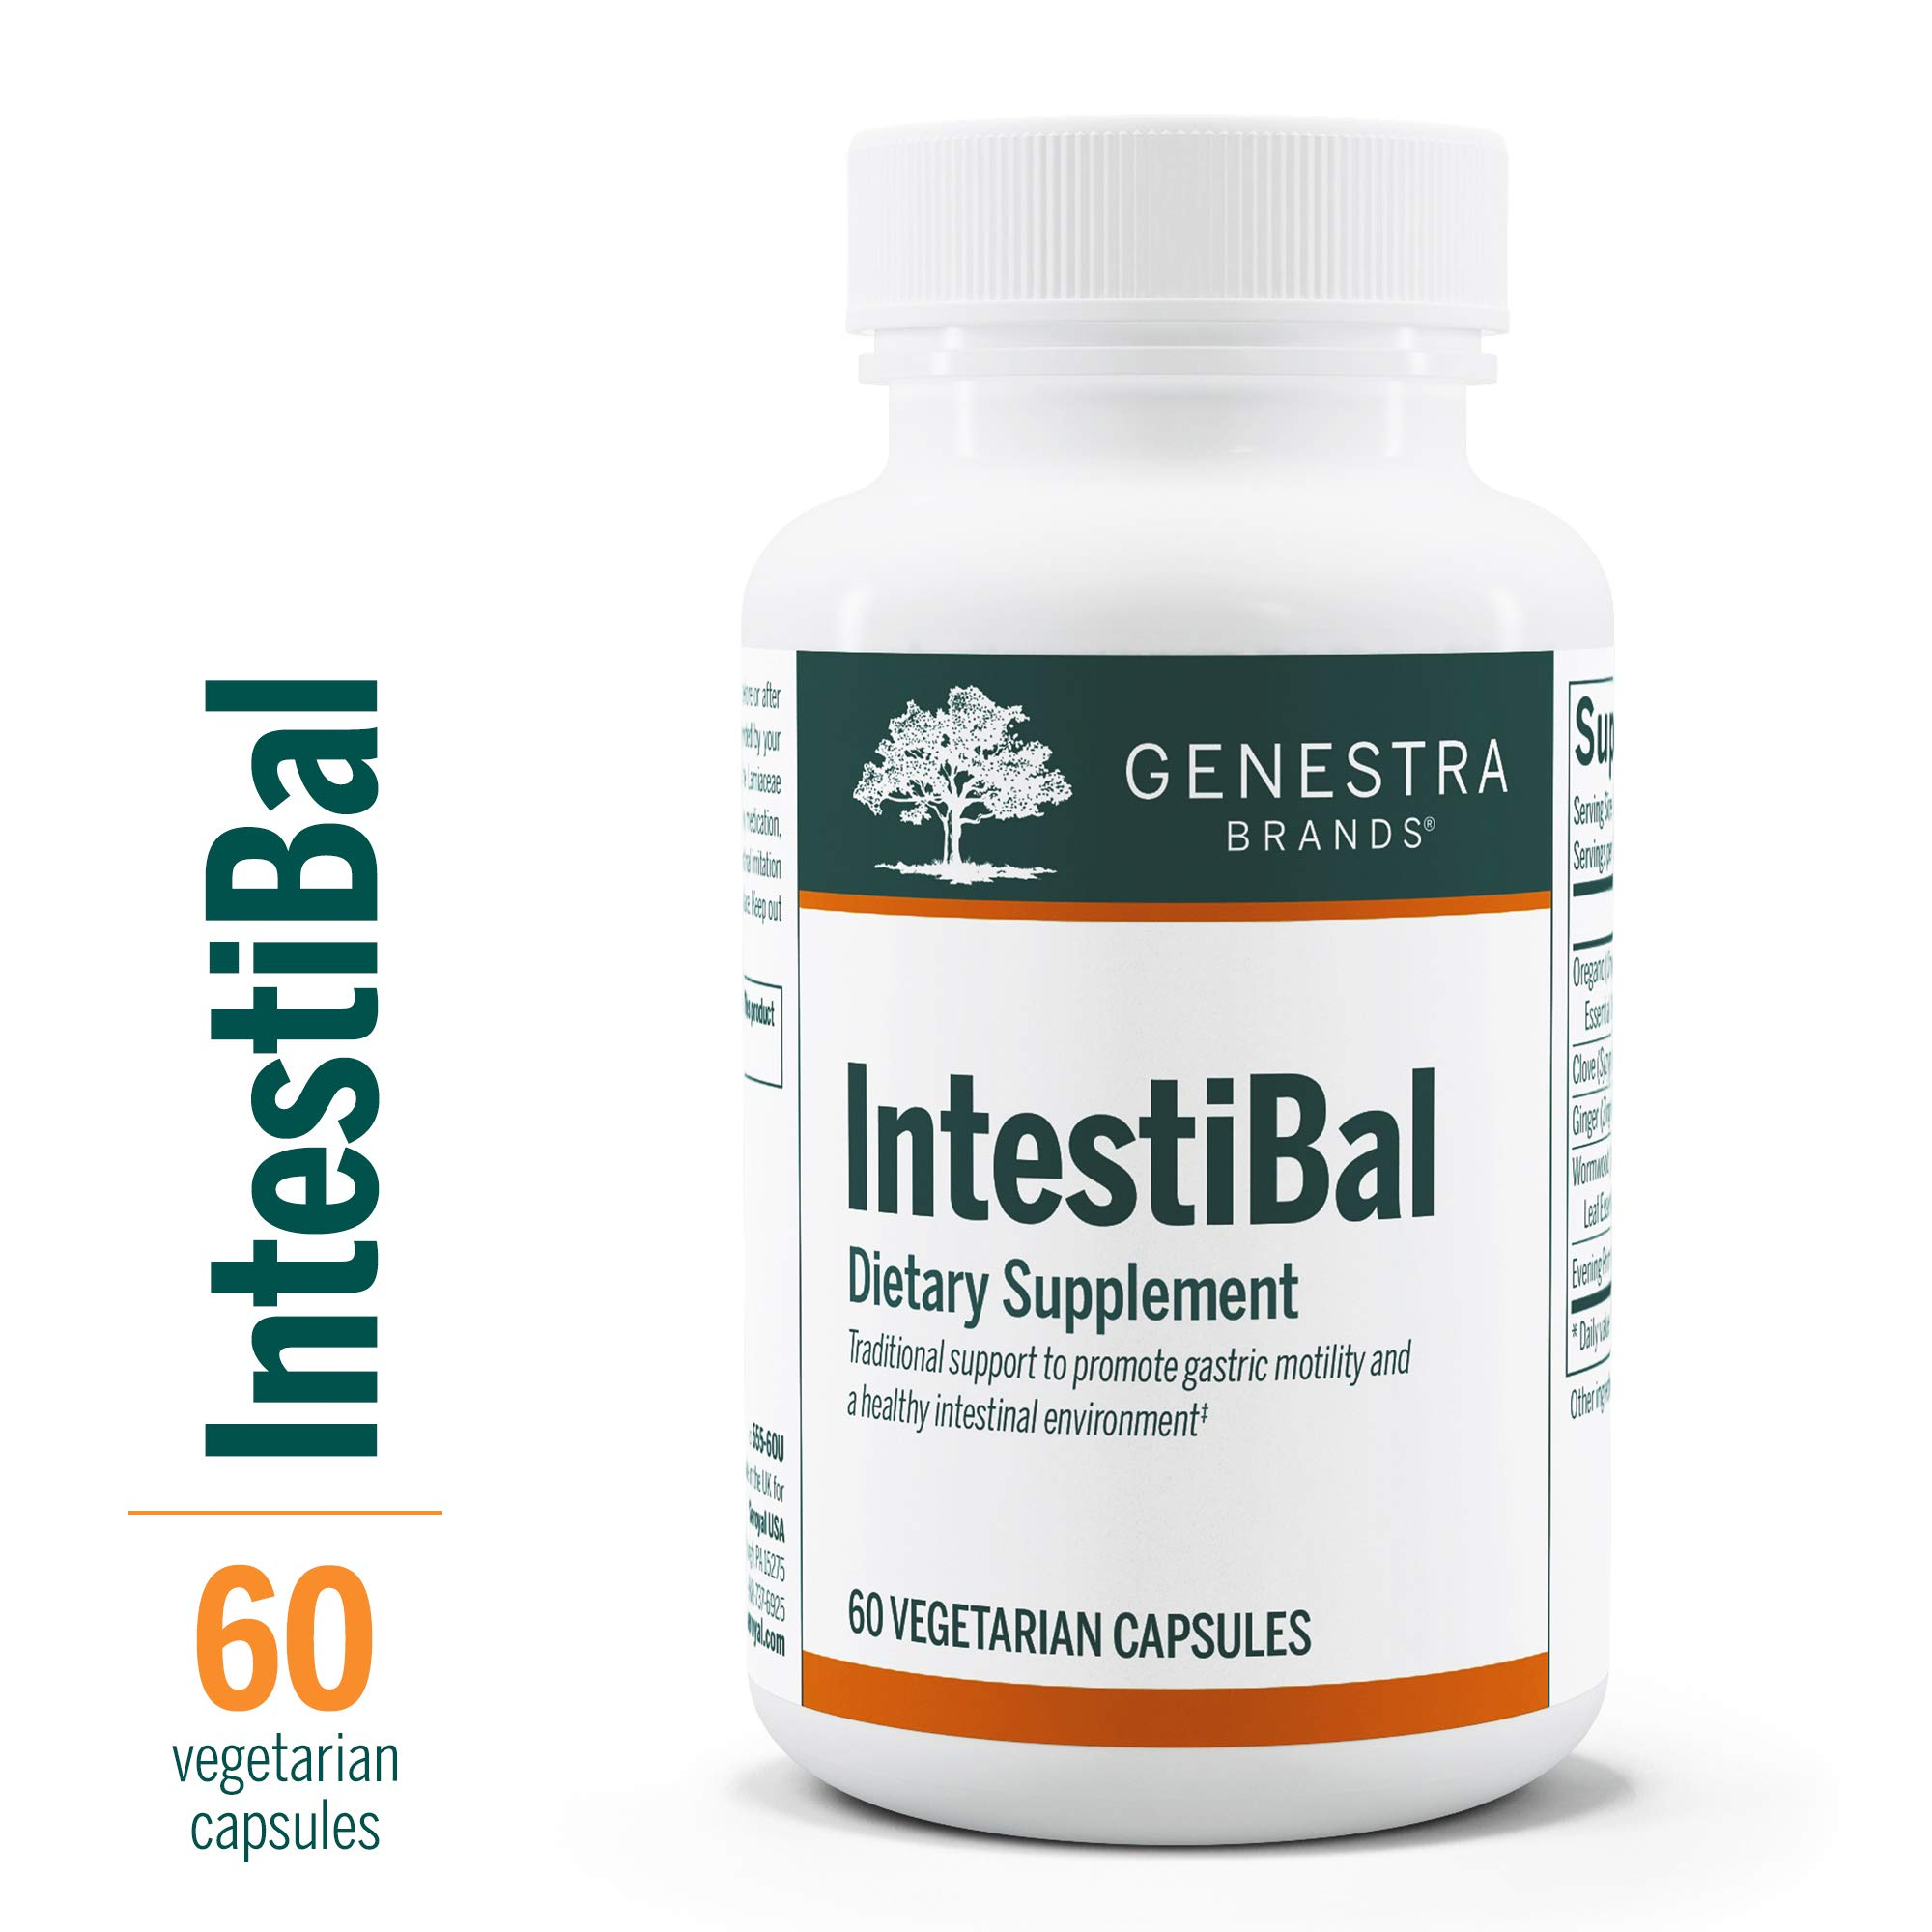 Genestra Brands - IntestiBal - with Essential Oils from Ginger and Wormwood - 60 Vegetable Capsules